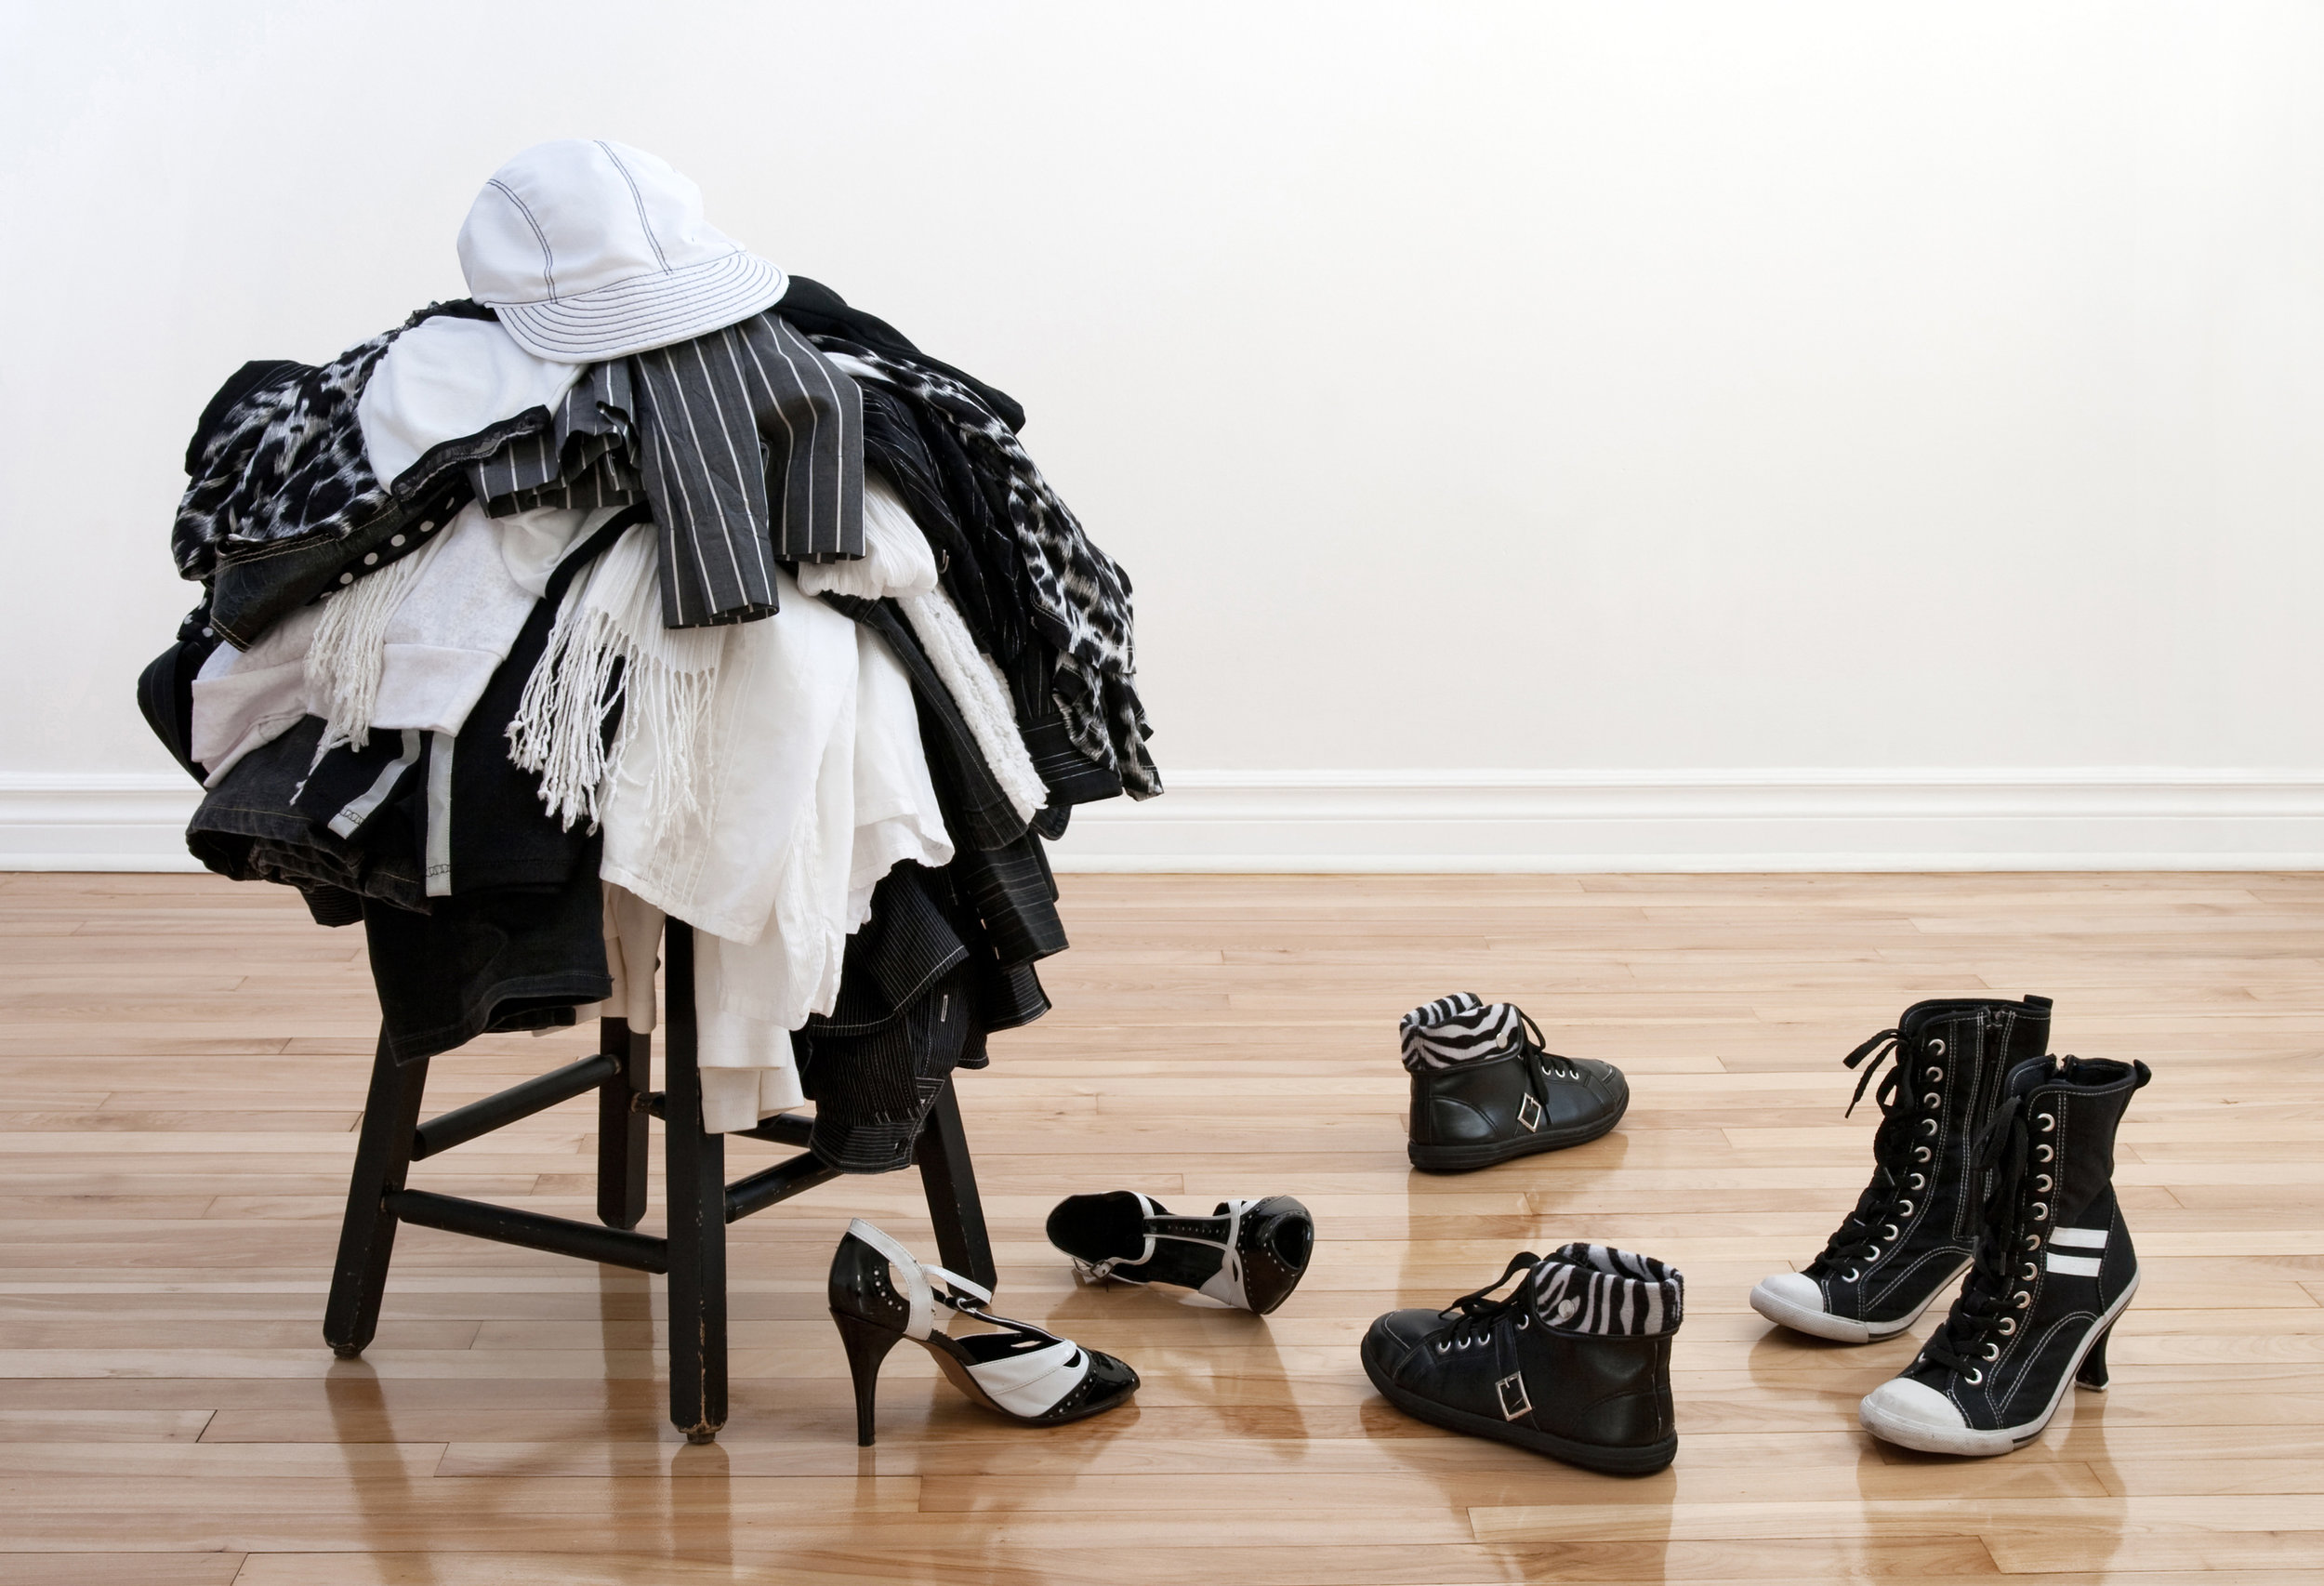 Organising - Declutter your home